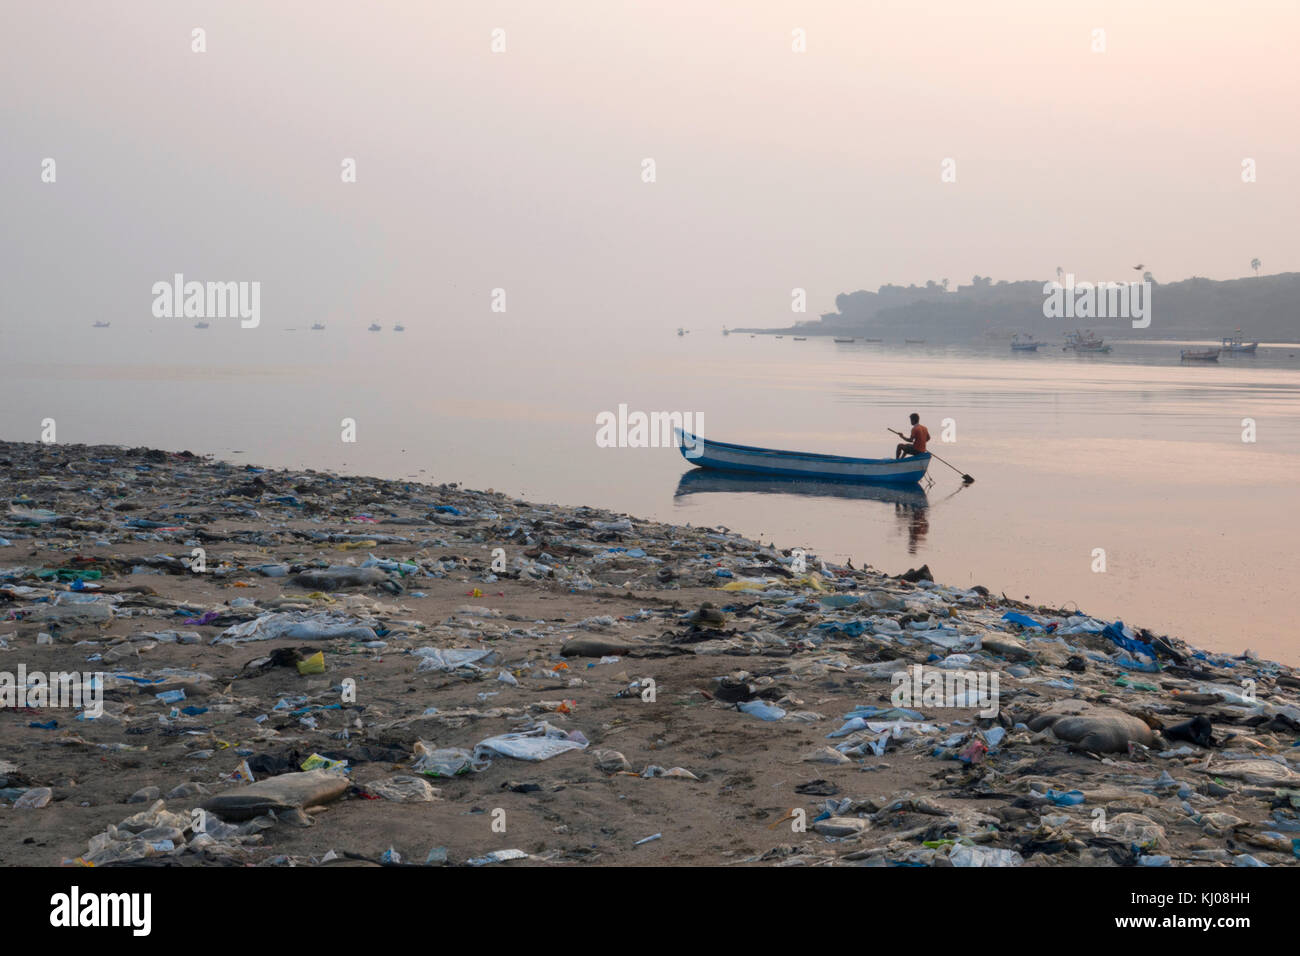 Fisherman paddles his boat past piles of plastic garbage and other rubbish on Versova Beach, Mumbai - Stock Image